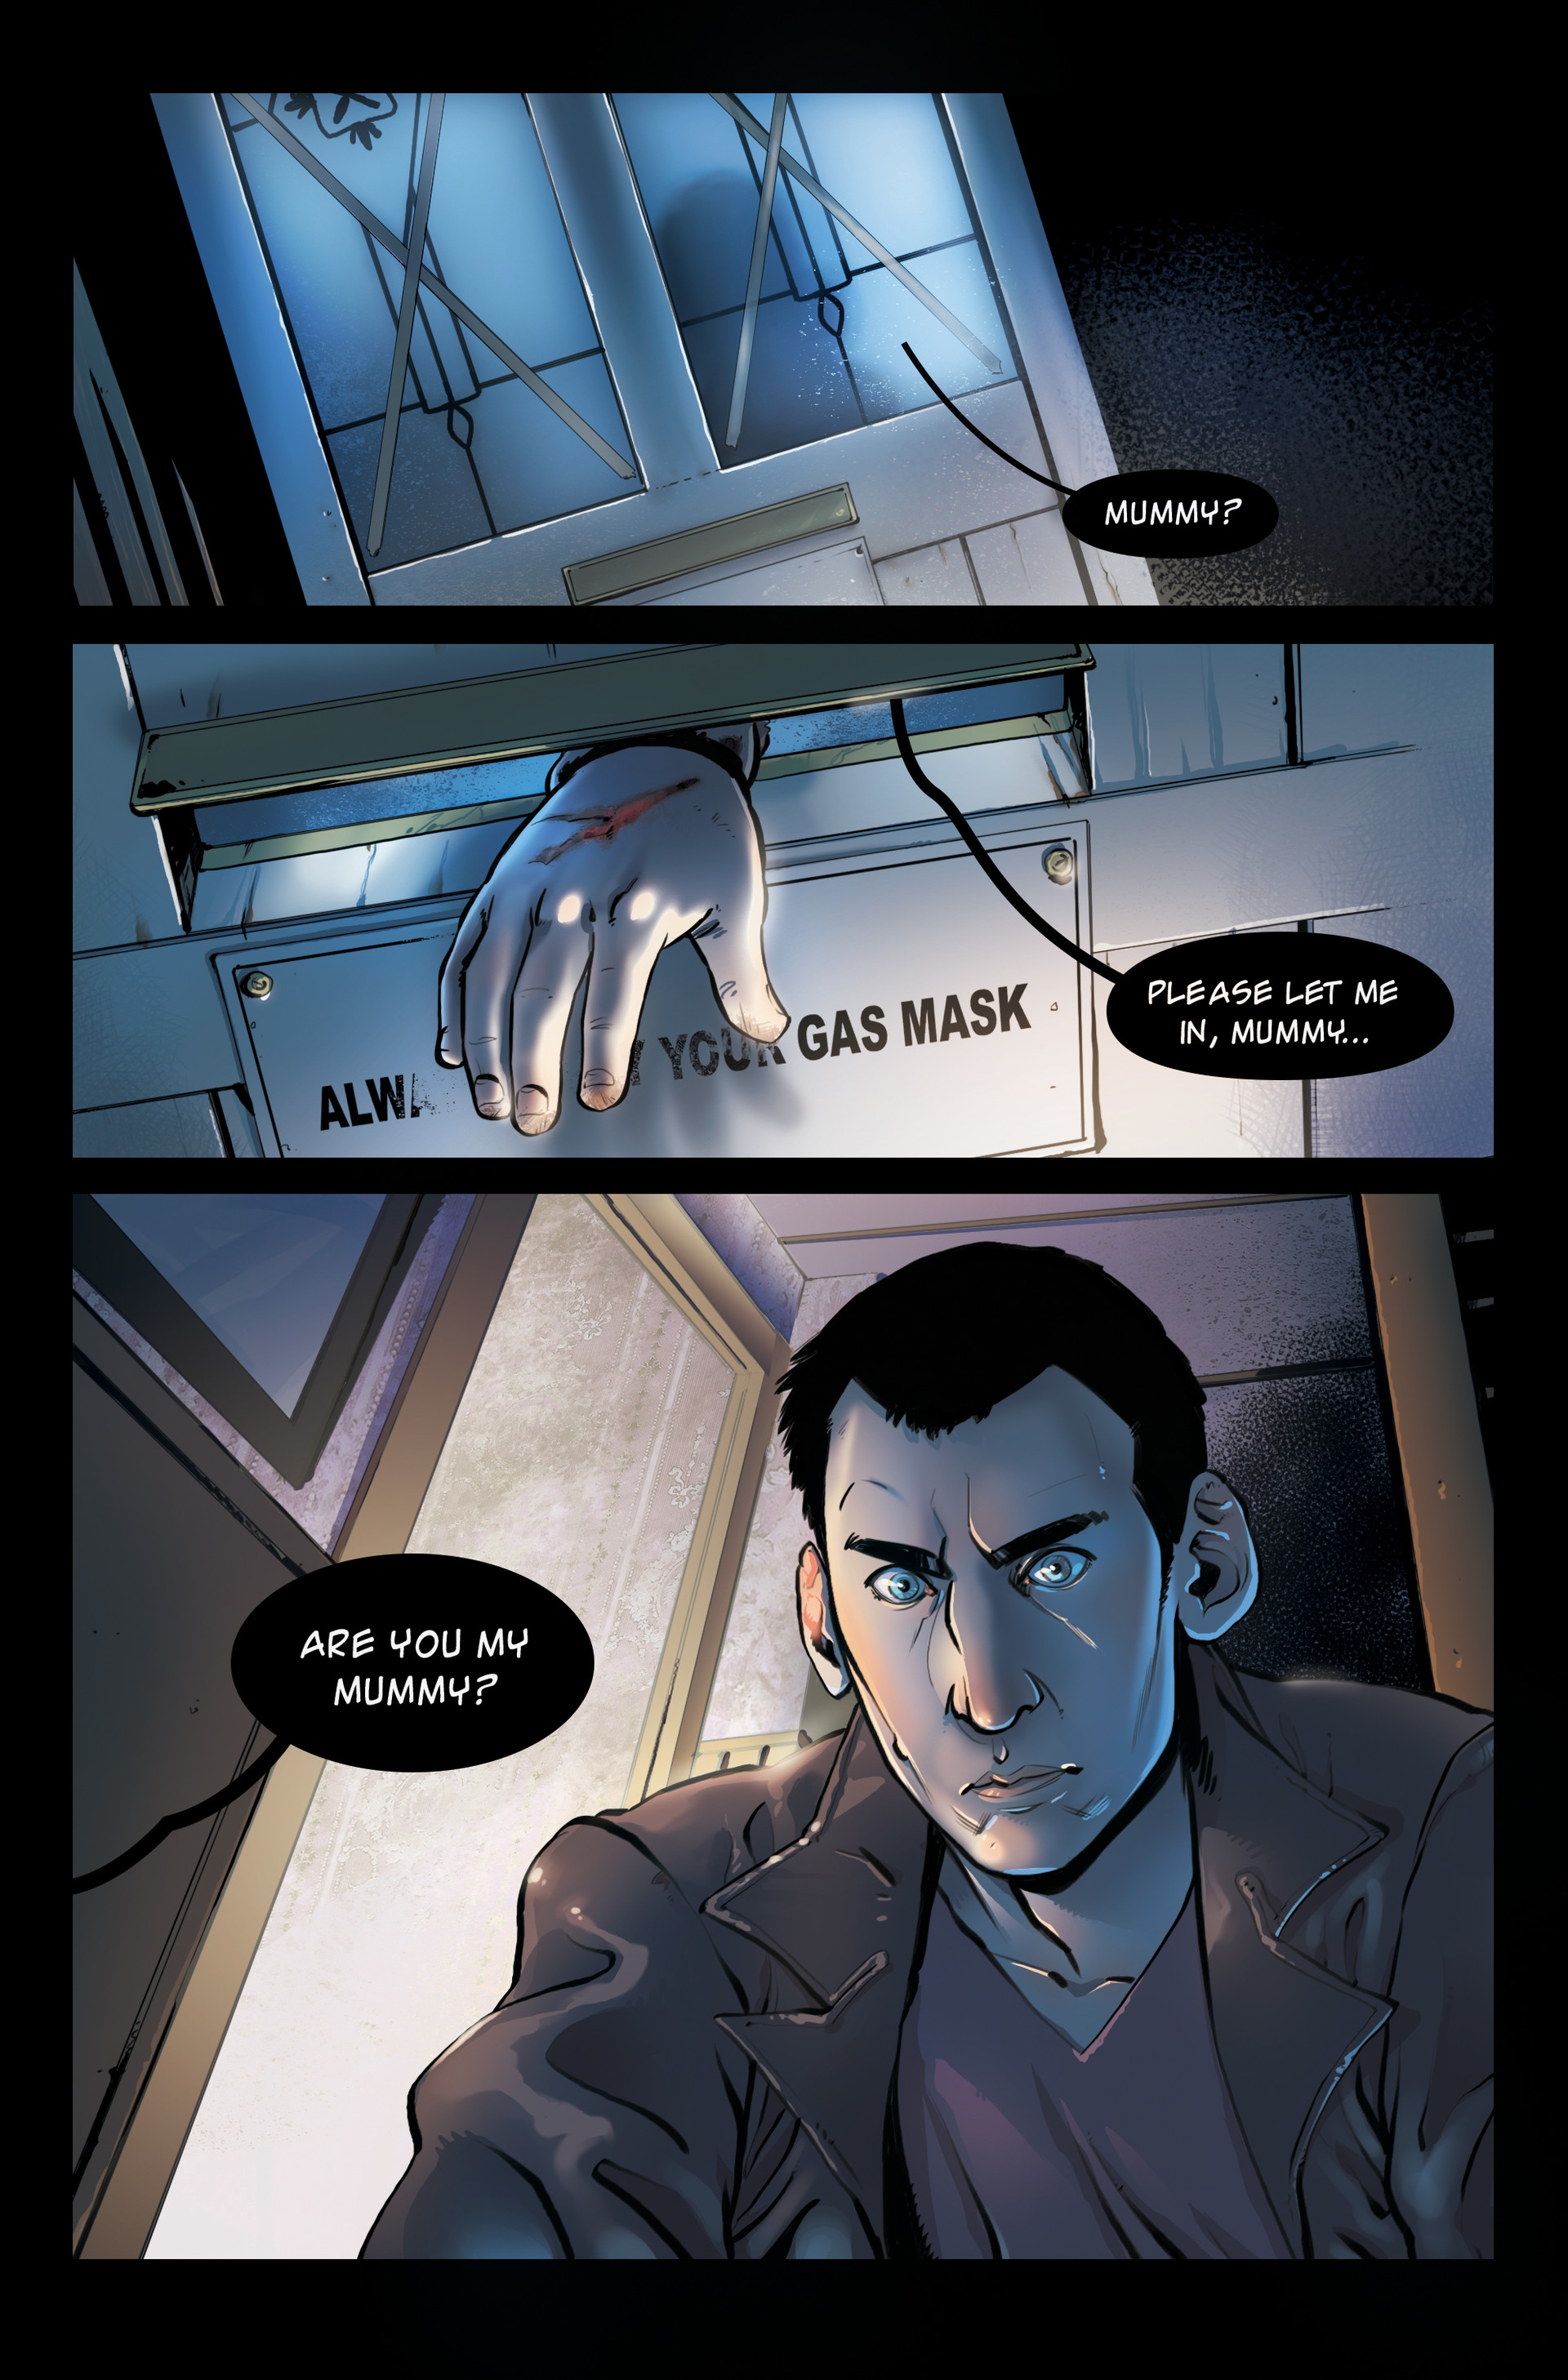 Claudia cocci doctor who page 04 final